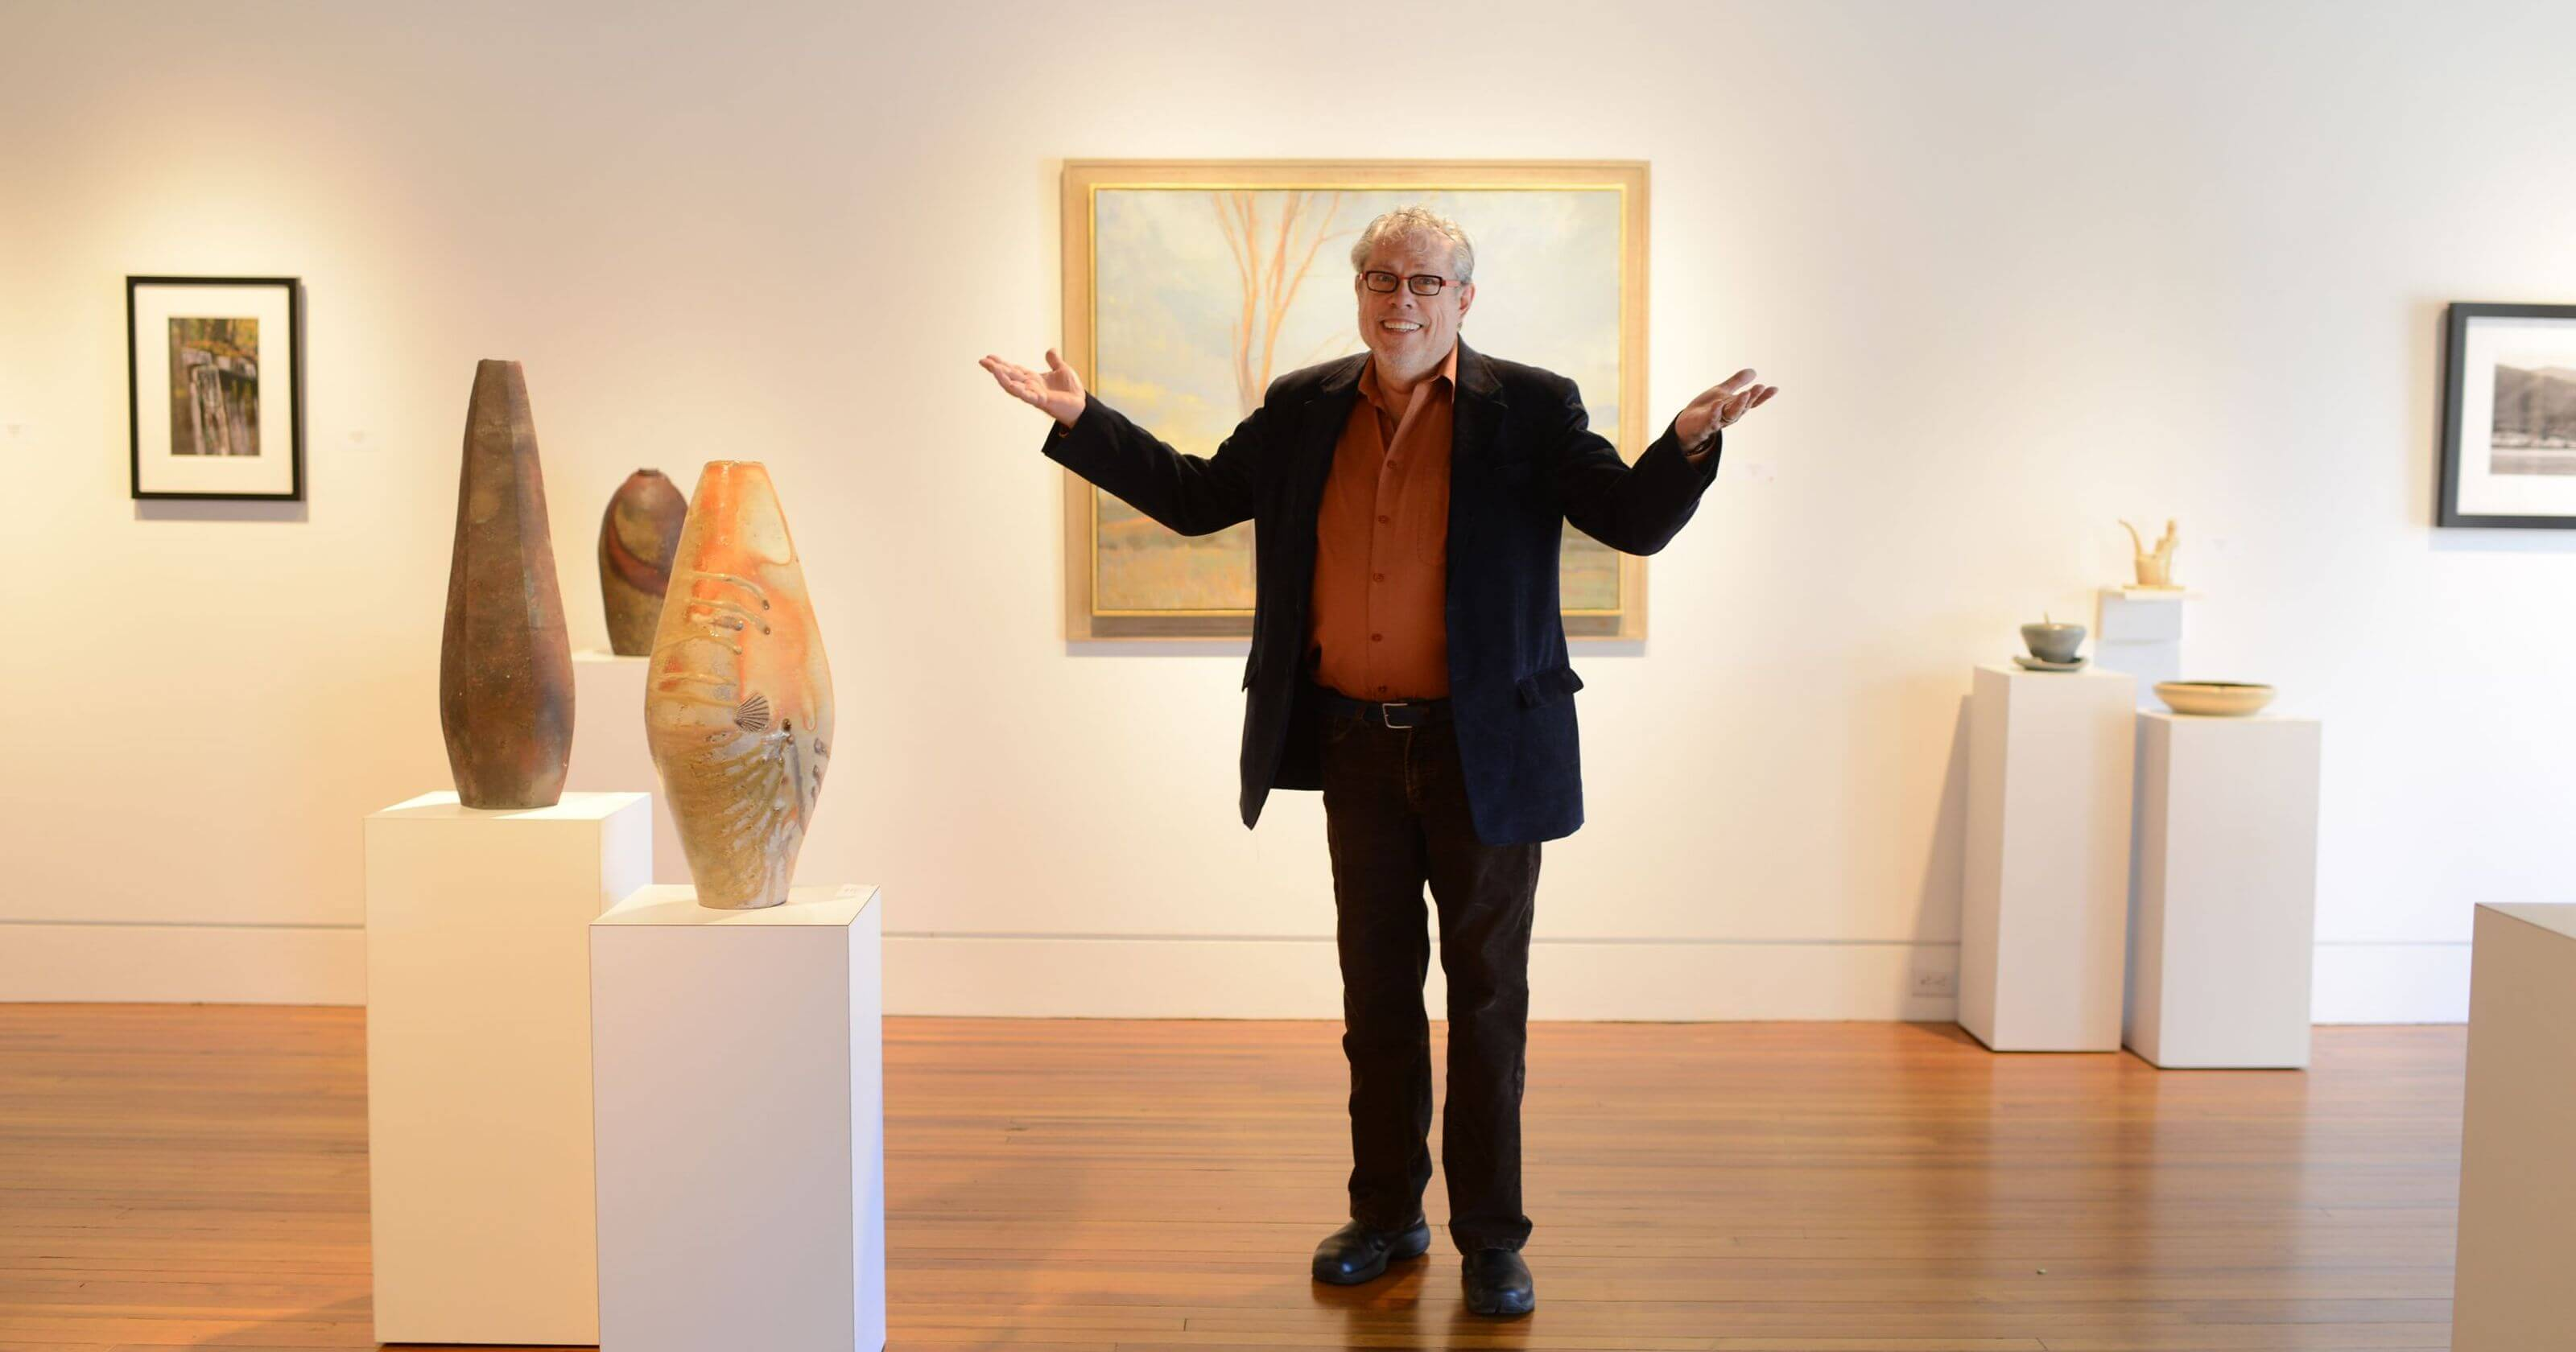 John Cram in a gallery with his hands lifted up to showcase it.